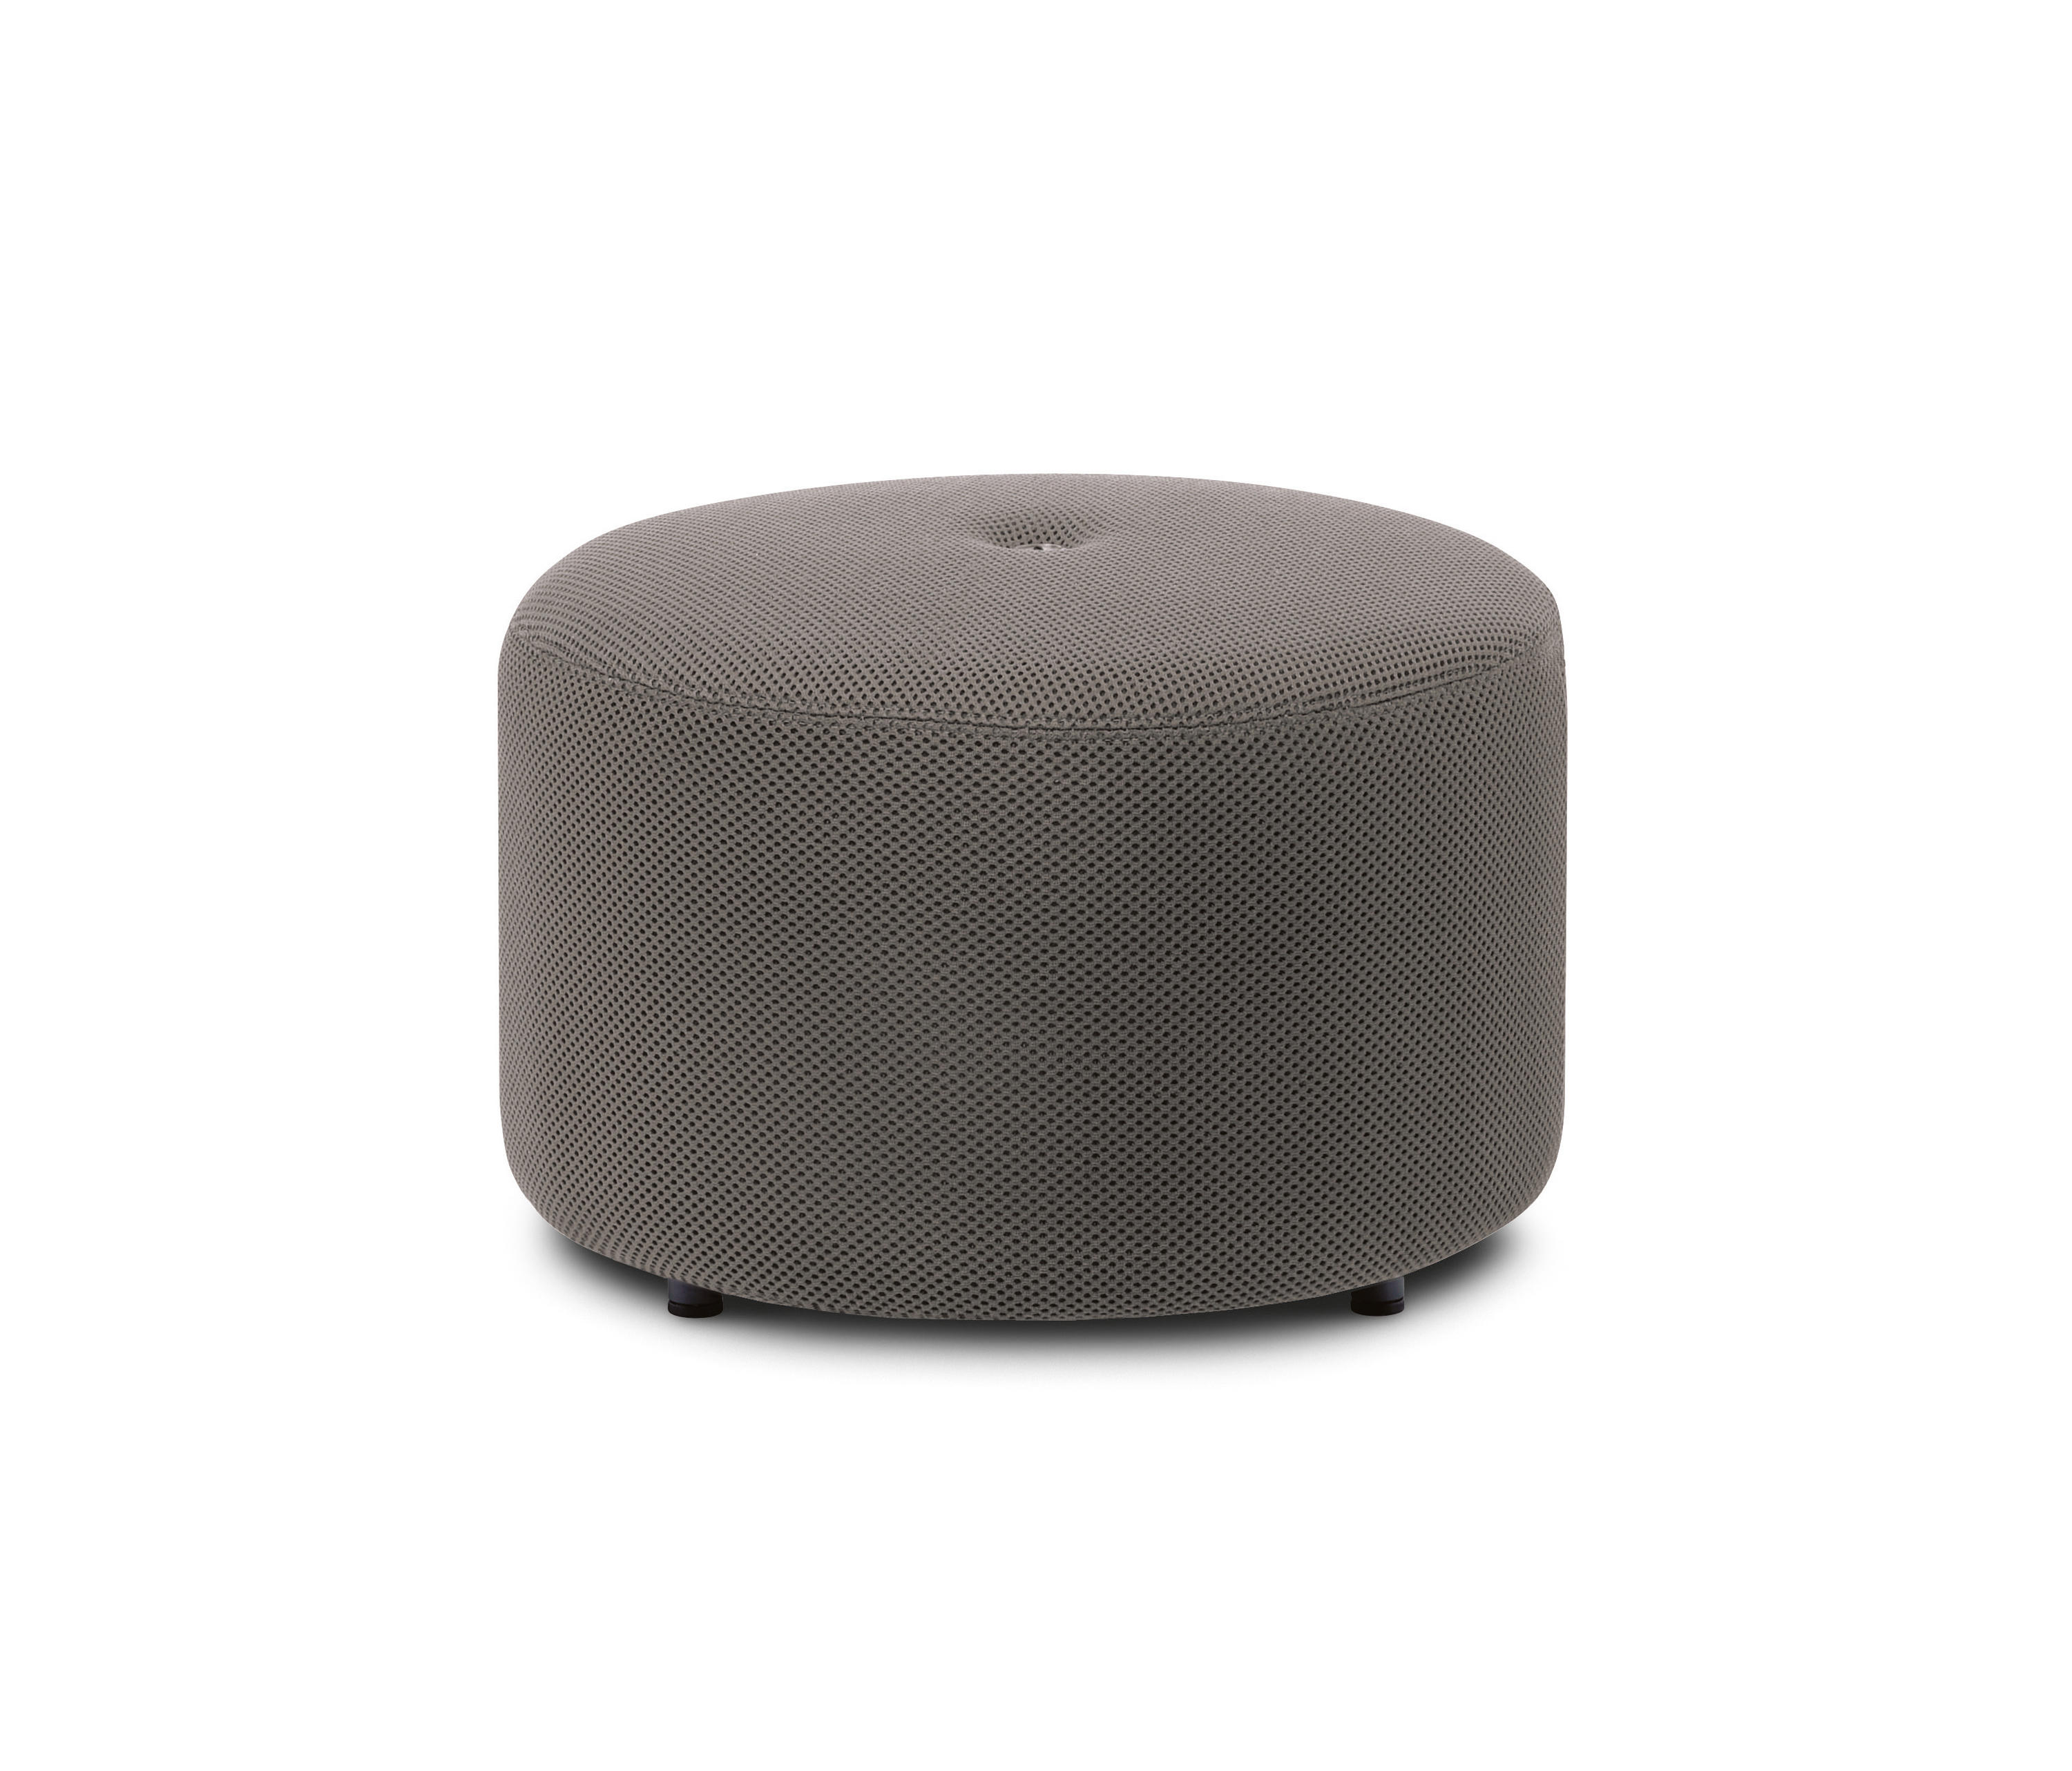 double 031 pouf poufs from roda architonic. Black Bedroom Furniture Sets. Home Design Ideas